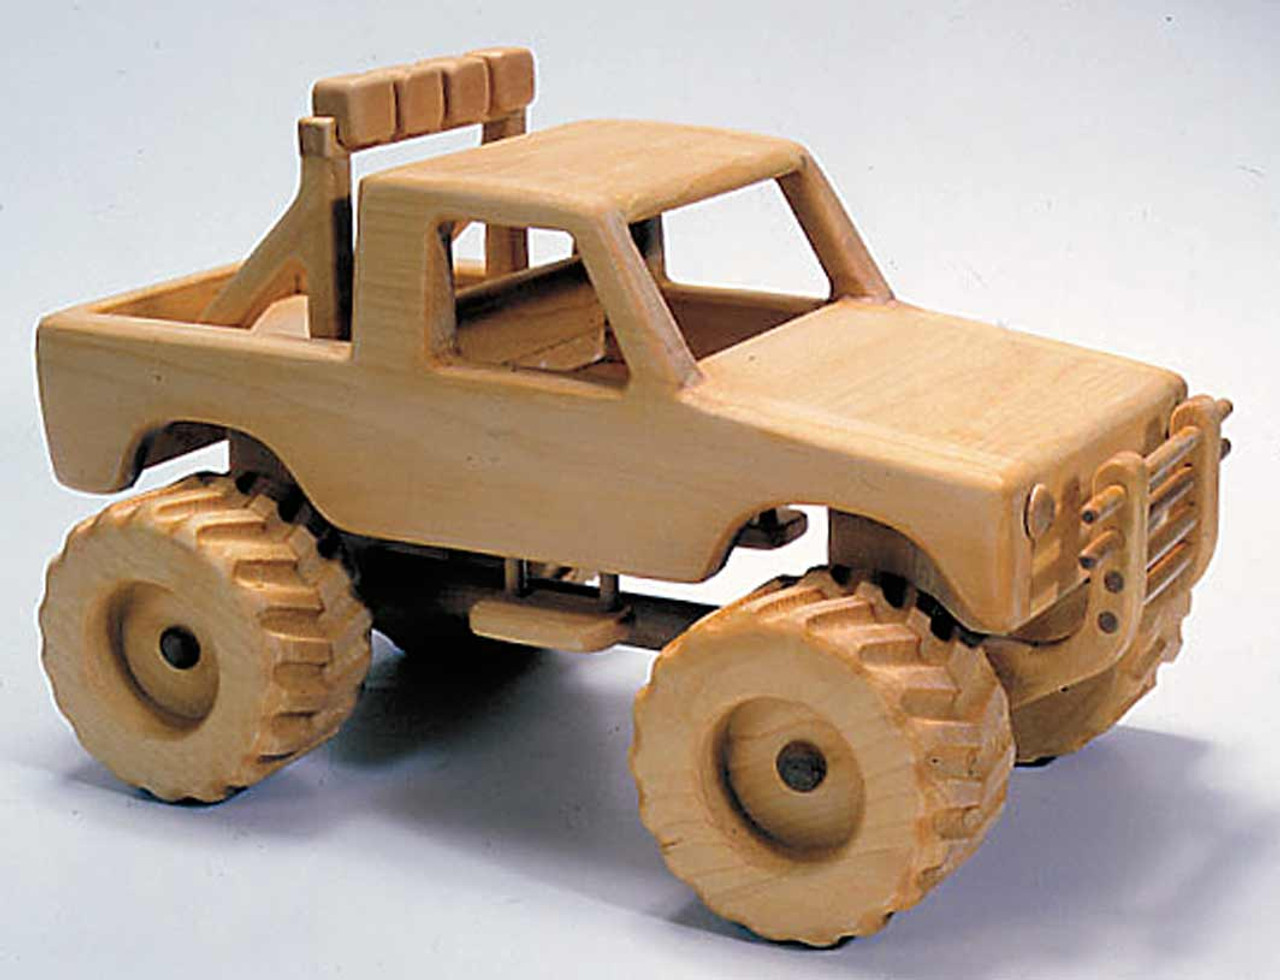 If your interested in the process of making toys, build this amazing truck with the 4X4 Truck Woodworking Plan.